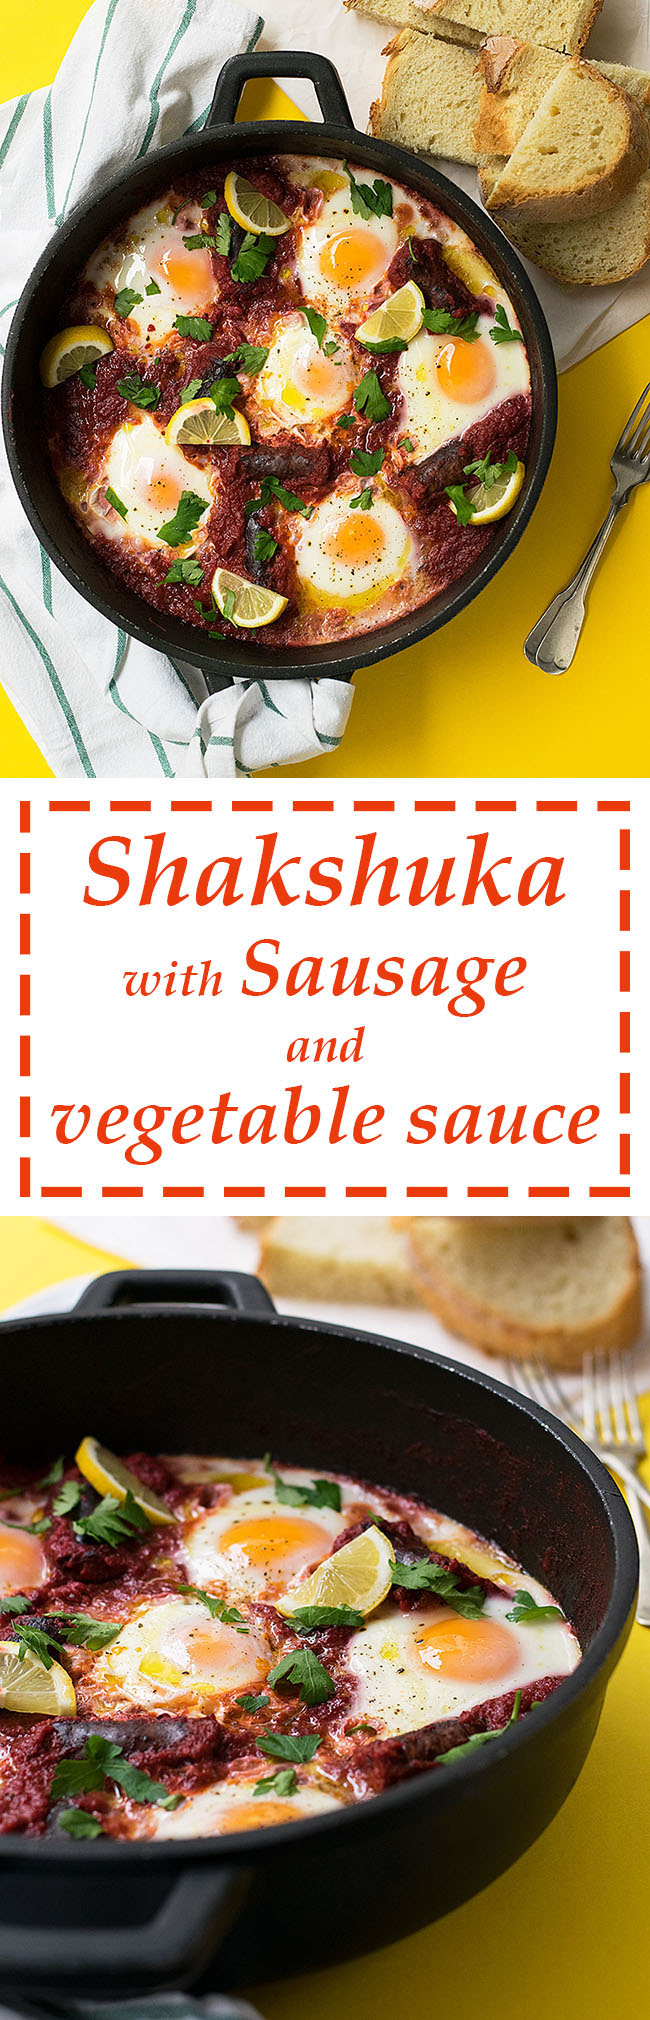 shakshuka with sausage and vegetable sauce 4